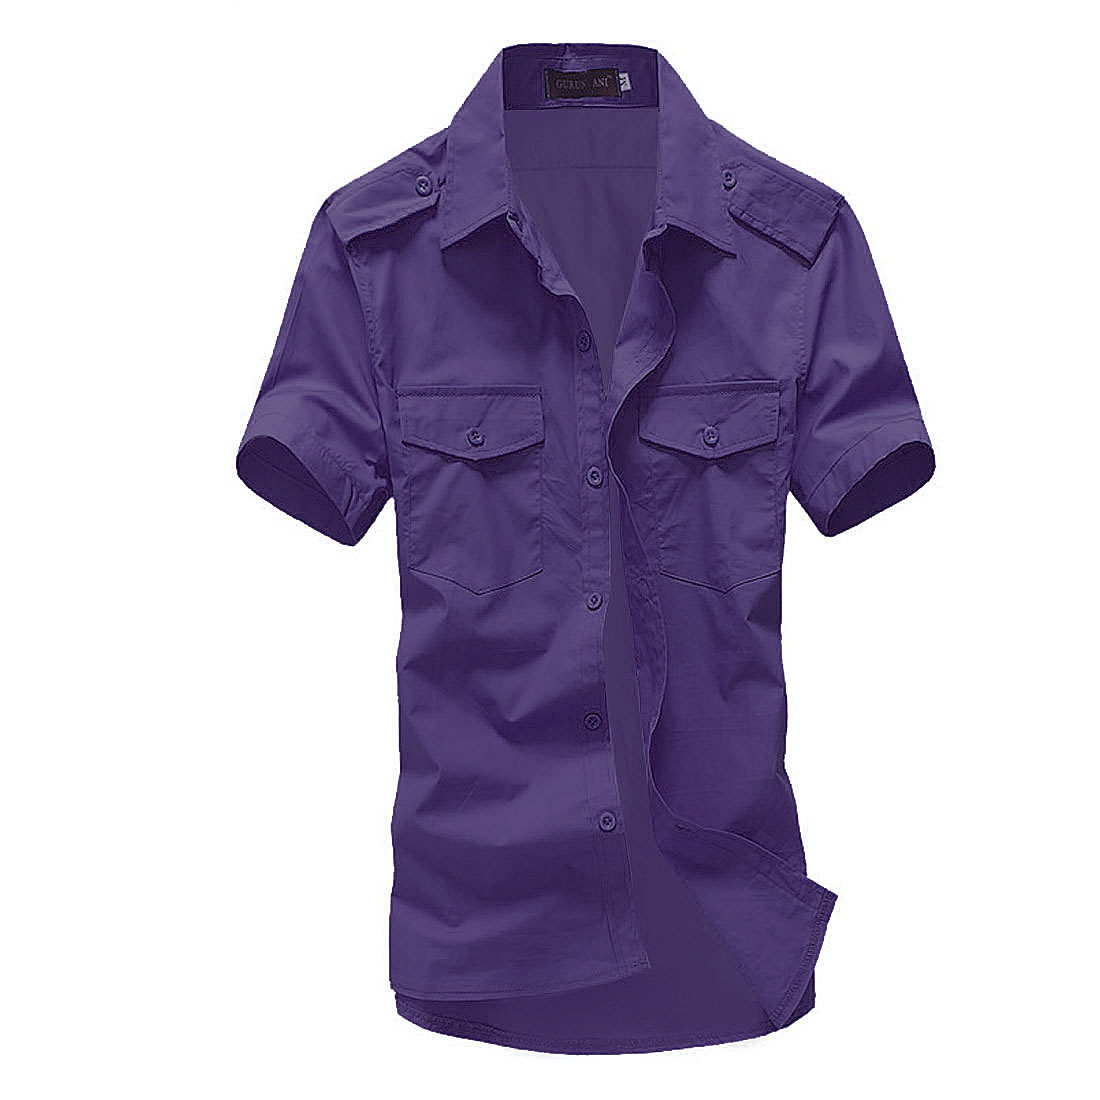 Man Pure Color Short Sleeved Point Collar Chic Shirts Purple L